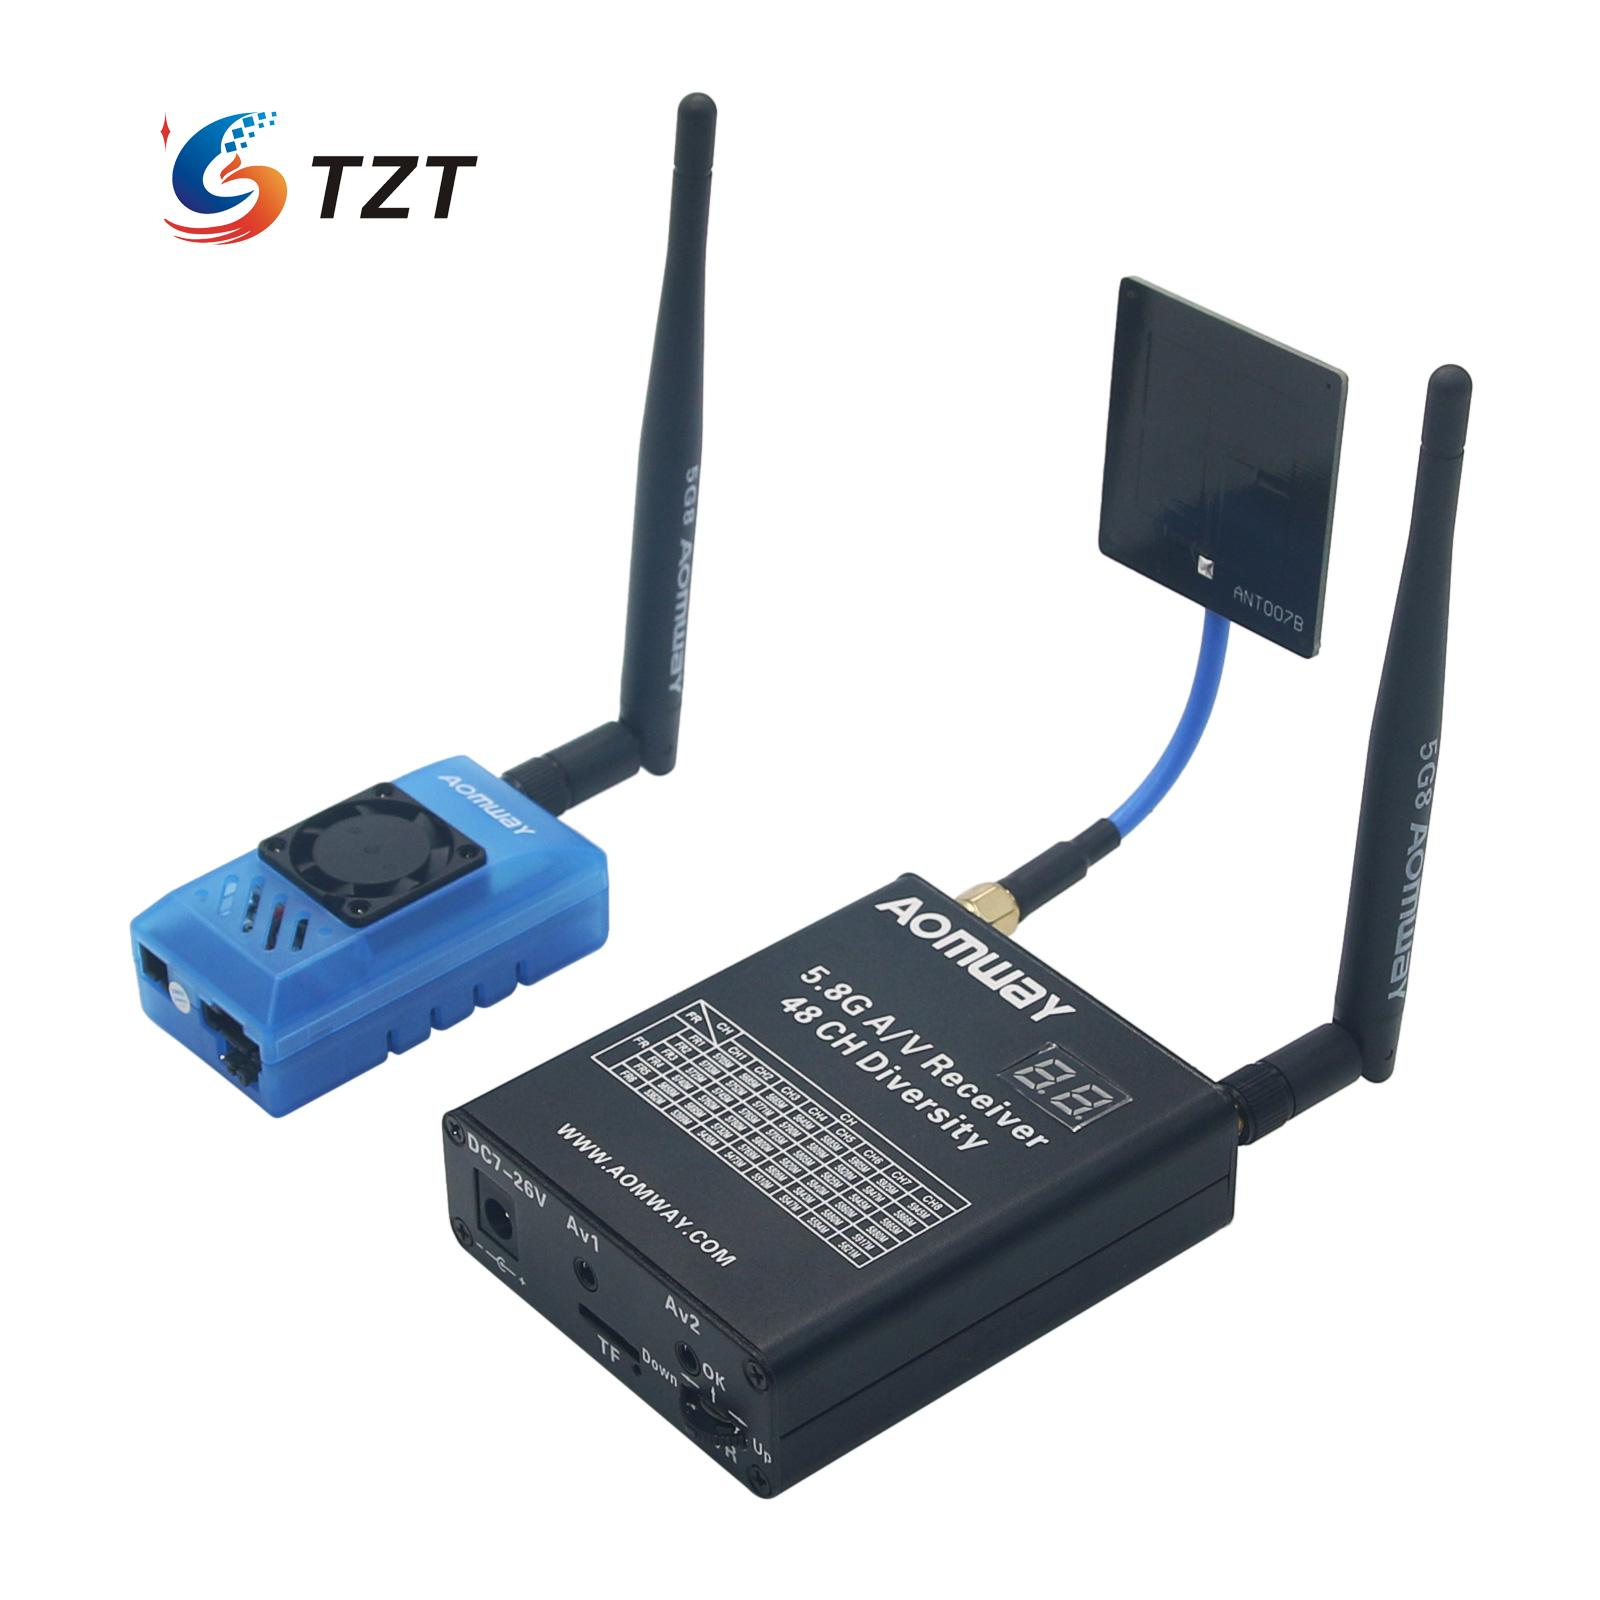 Aomway 5.8G A/V Receiver 48 CH FPV Telemetry Diversity DVR +AOMWAY 5.8G 32CH 1000mw TX Transmitter Camera Kit original aomway rx006 dvr video recorder 5 8g 48ch diversity raceband a v receiver for rc multicopter antenna transmitter part